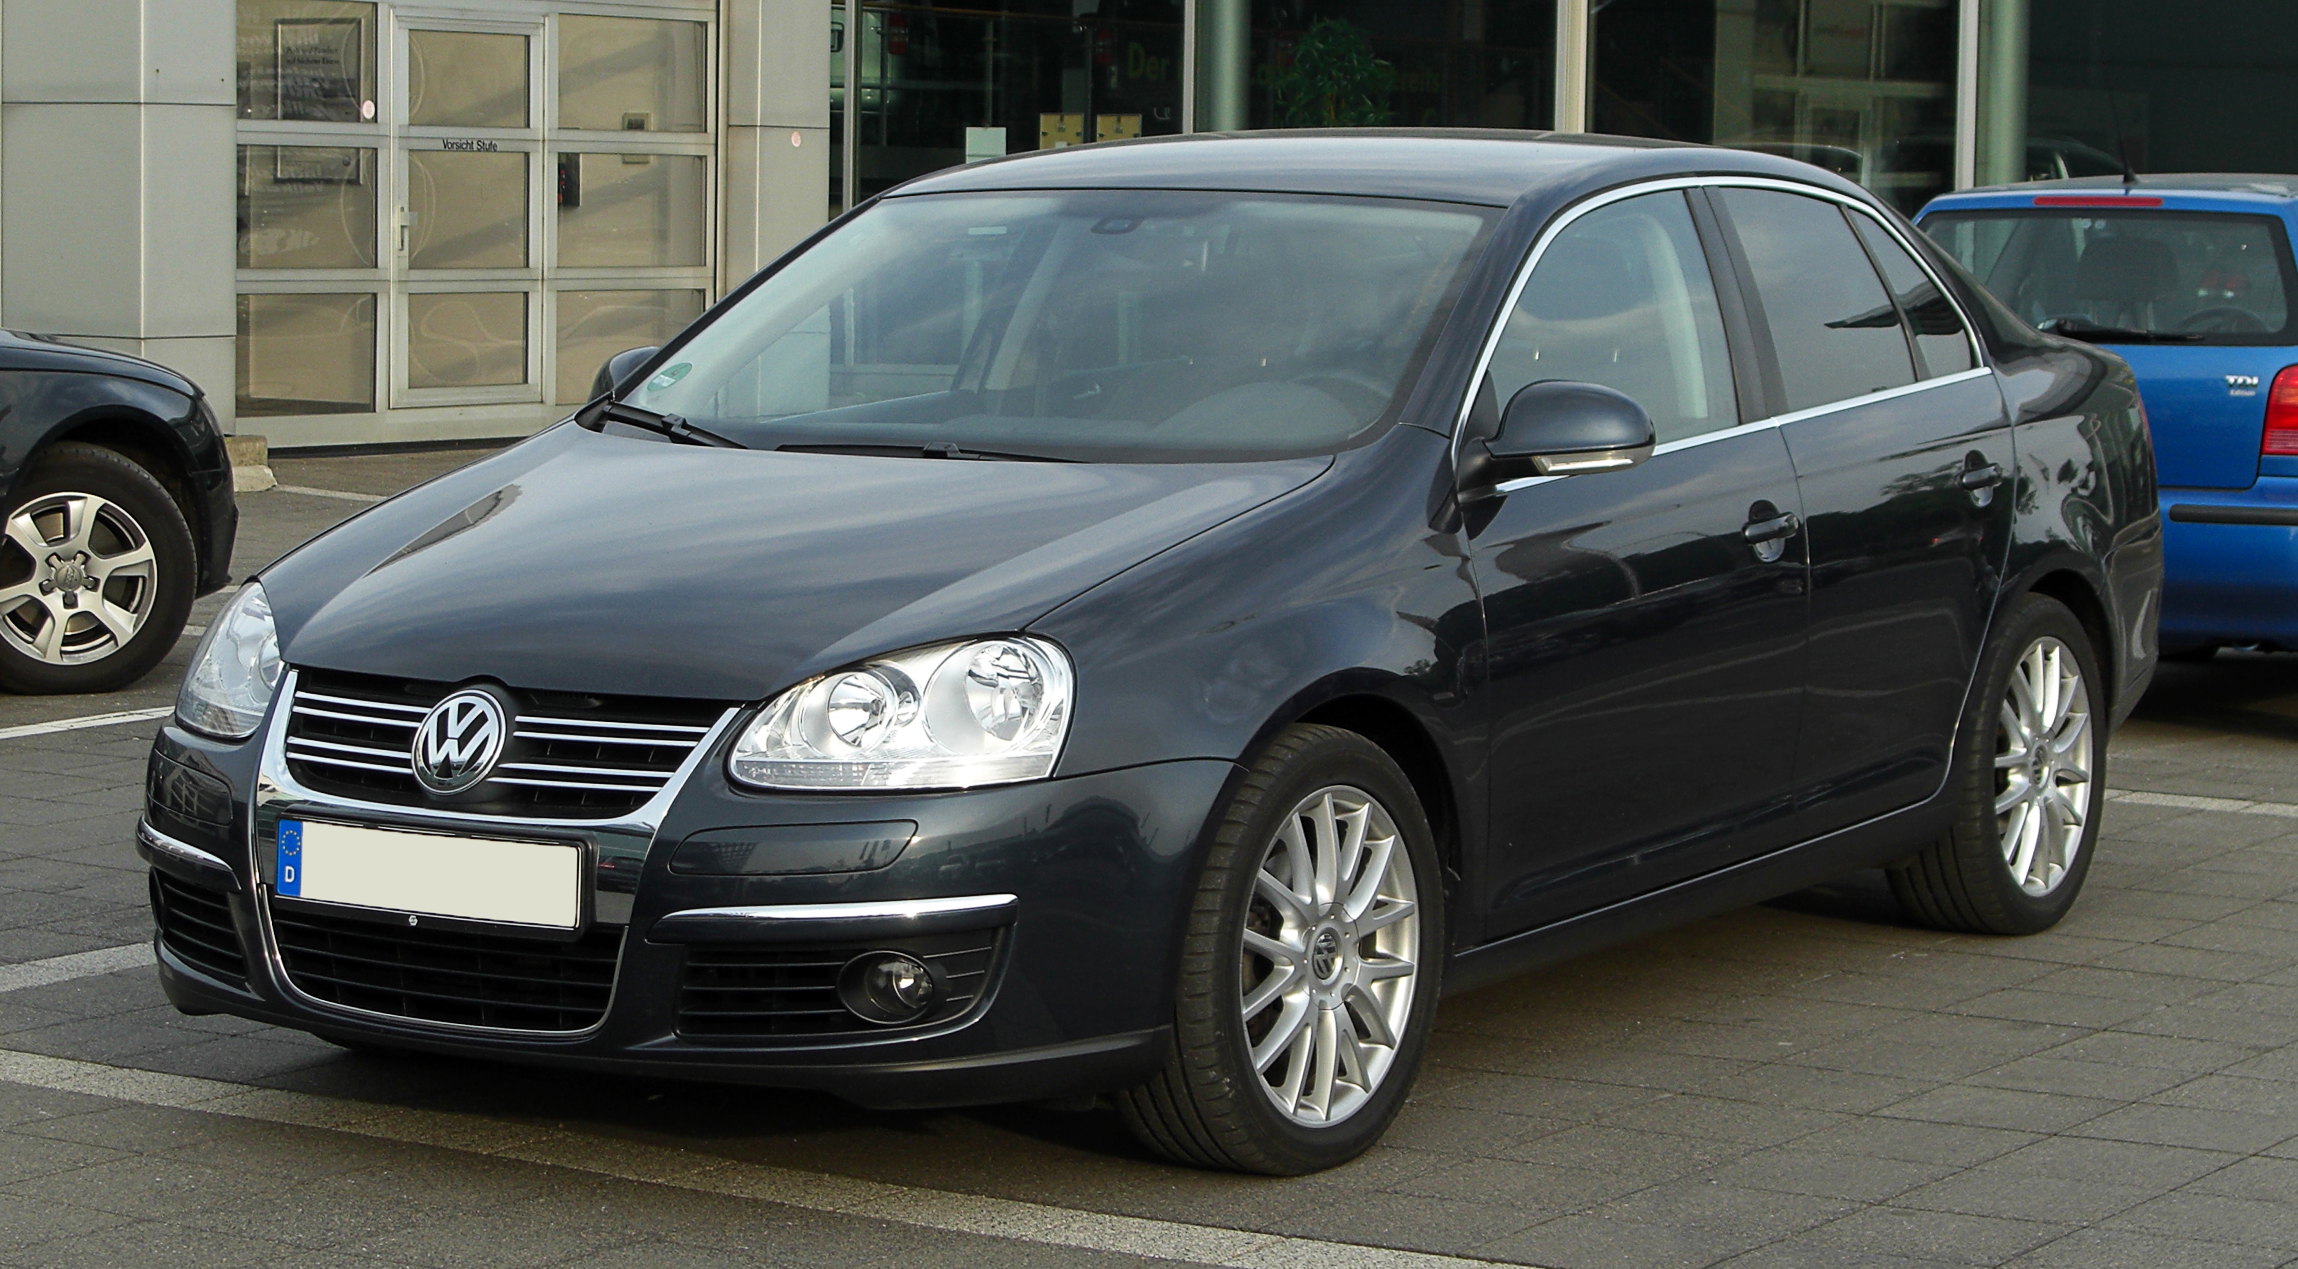 Volkswagen Jetta 2.3 2000 photo - 7